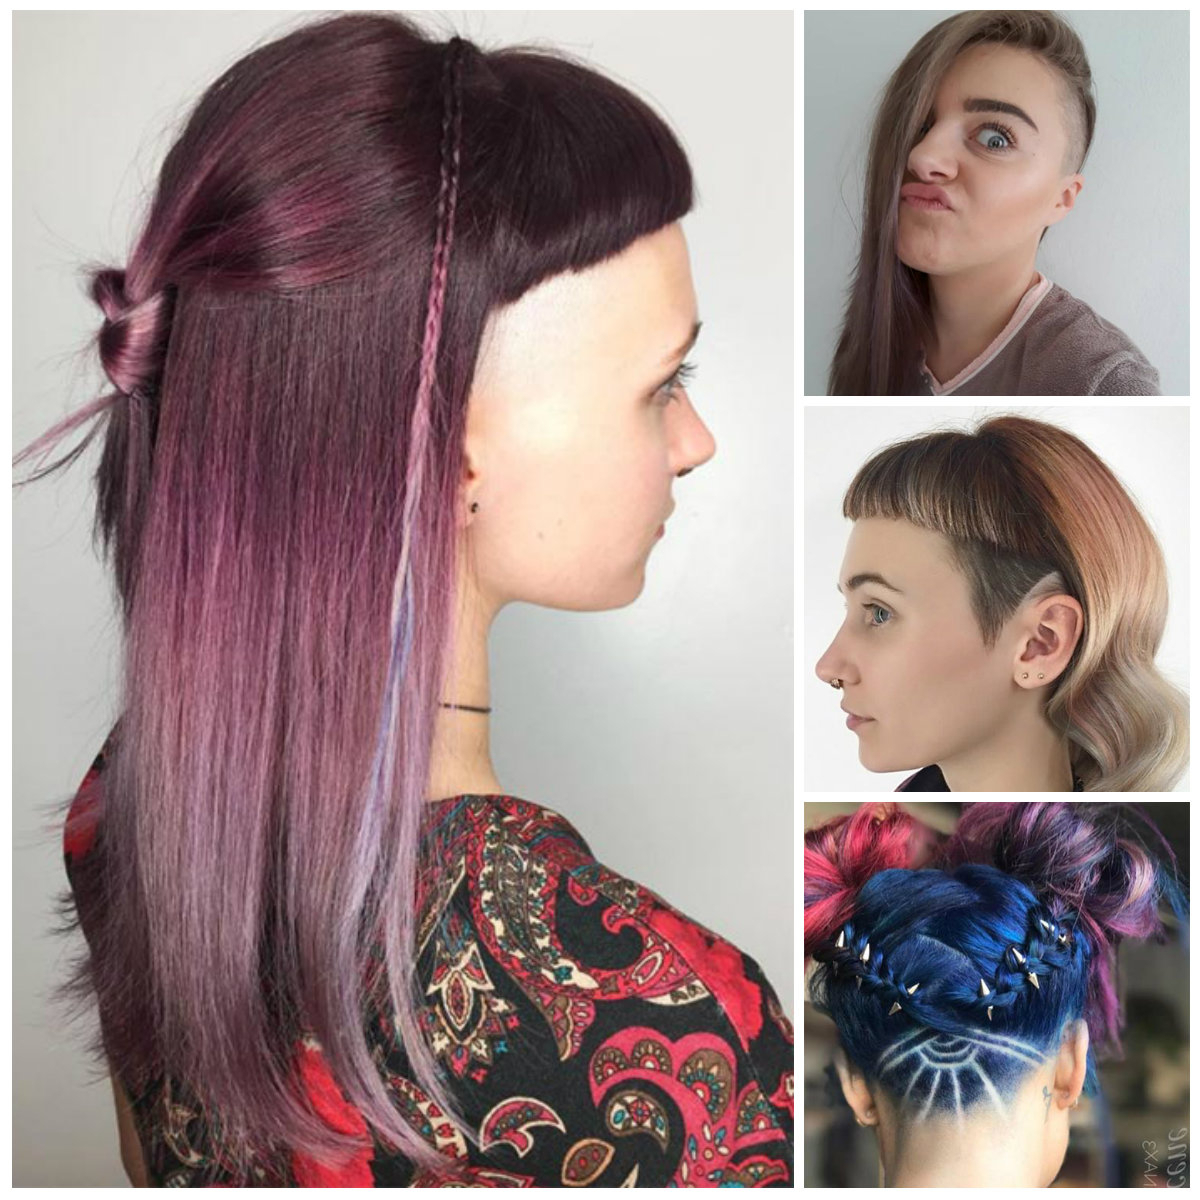 2019 Daring Color And Movement Hairstyles Within 2019 Haircuts, Hairstyles And Hair Colors (View 6 of 20)